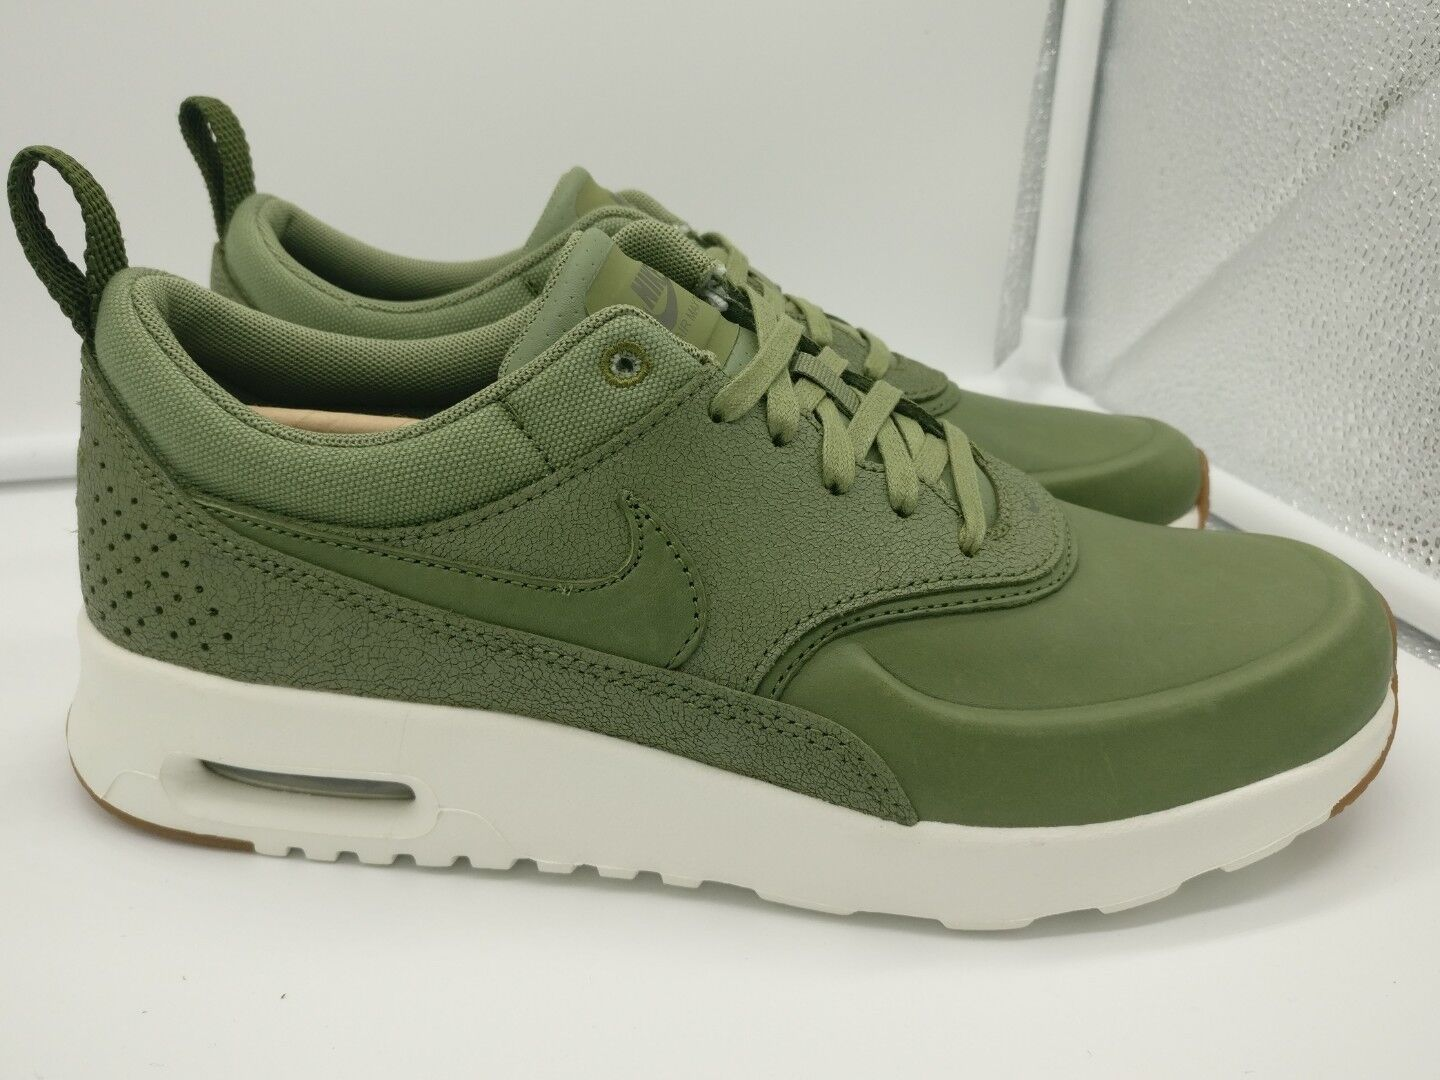 Nike Damenschuhe Air Max Thea PRM Premium UK 4.5 Palm Green Sail 616723305